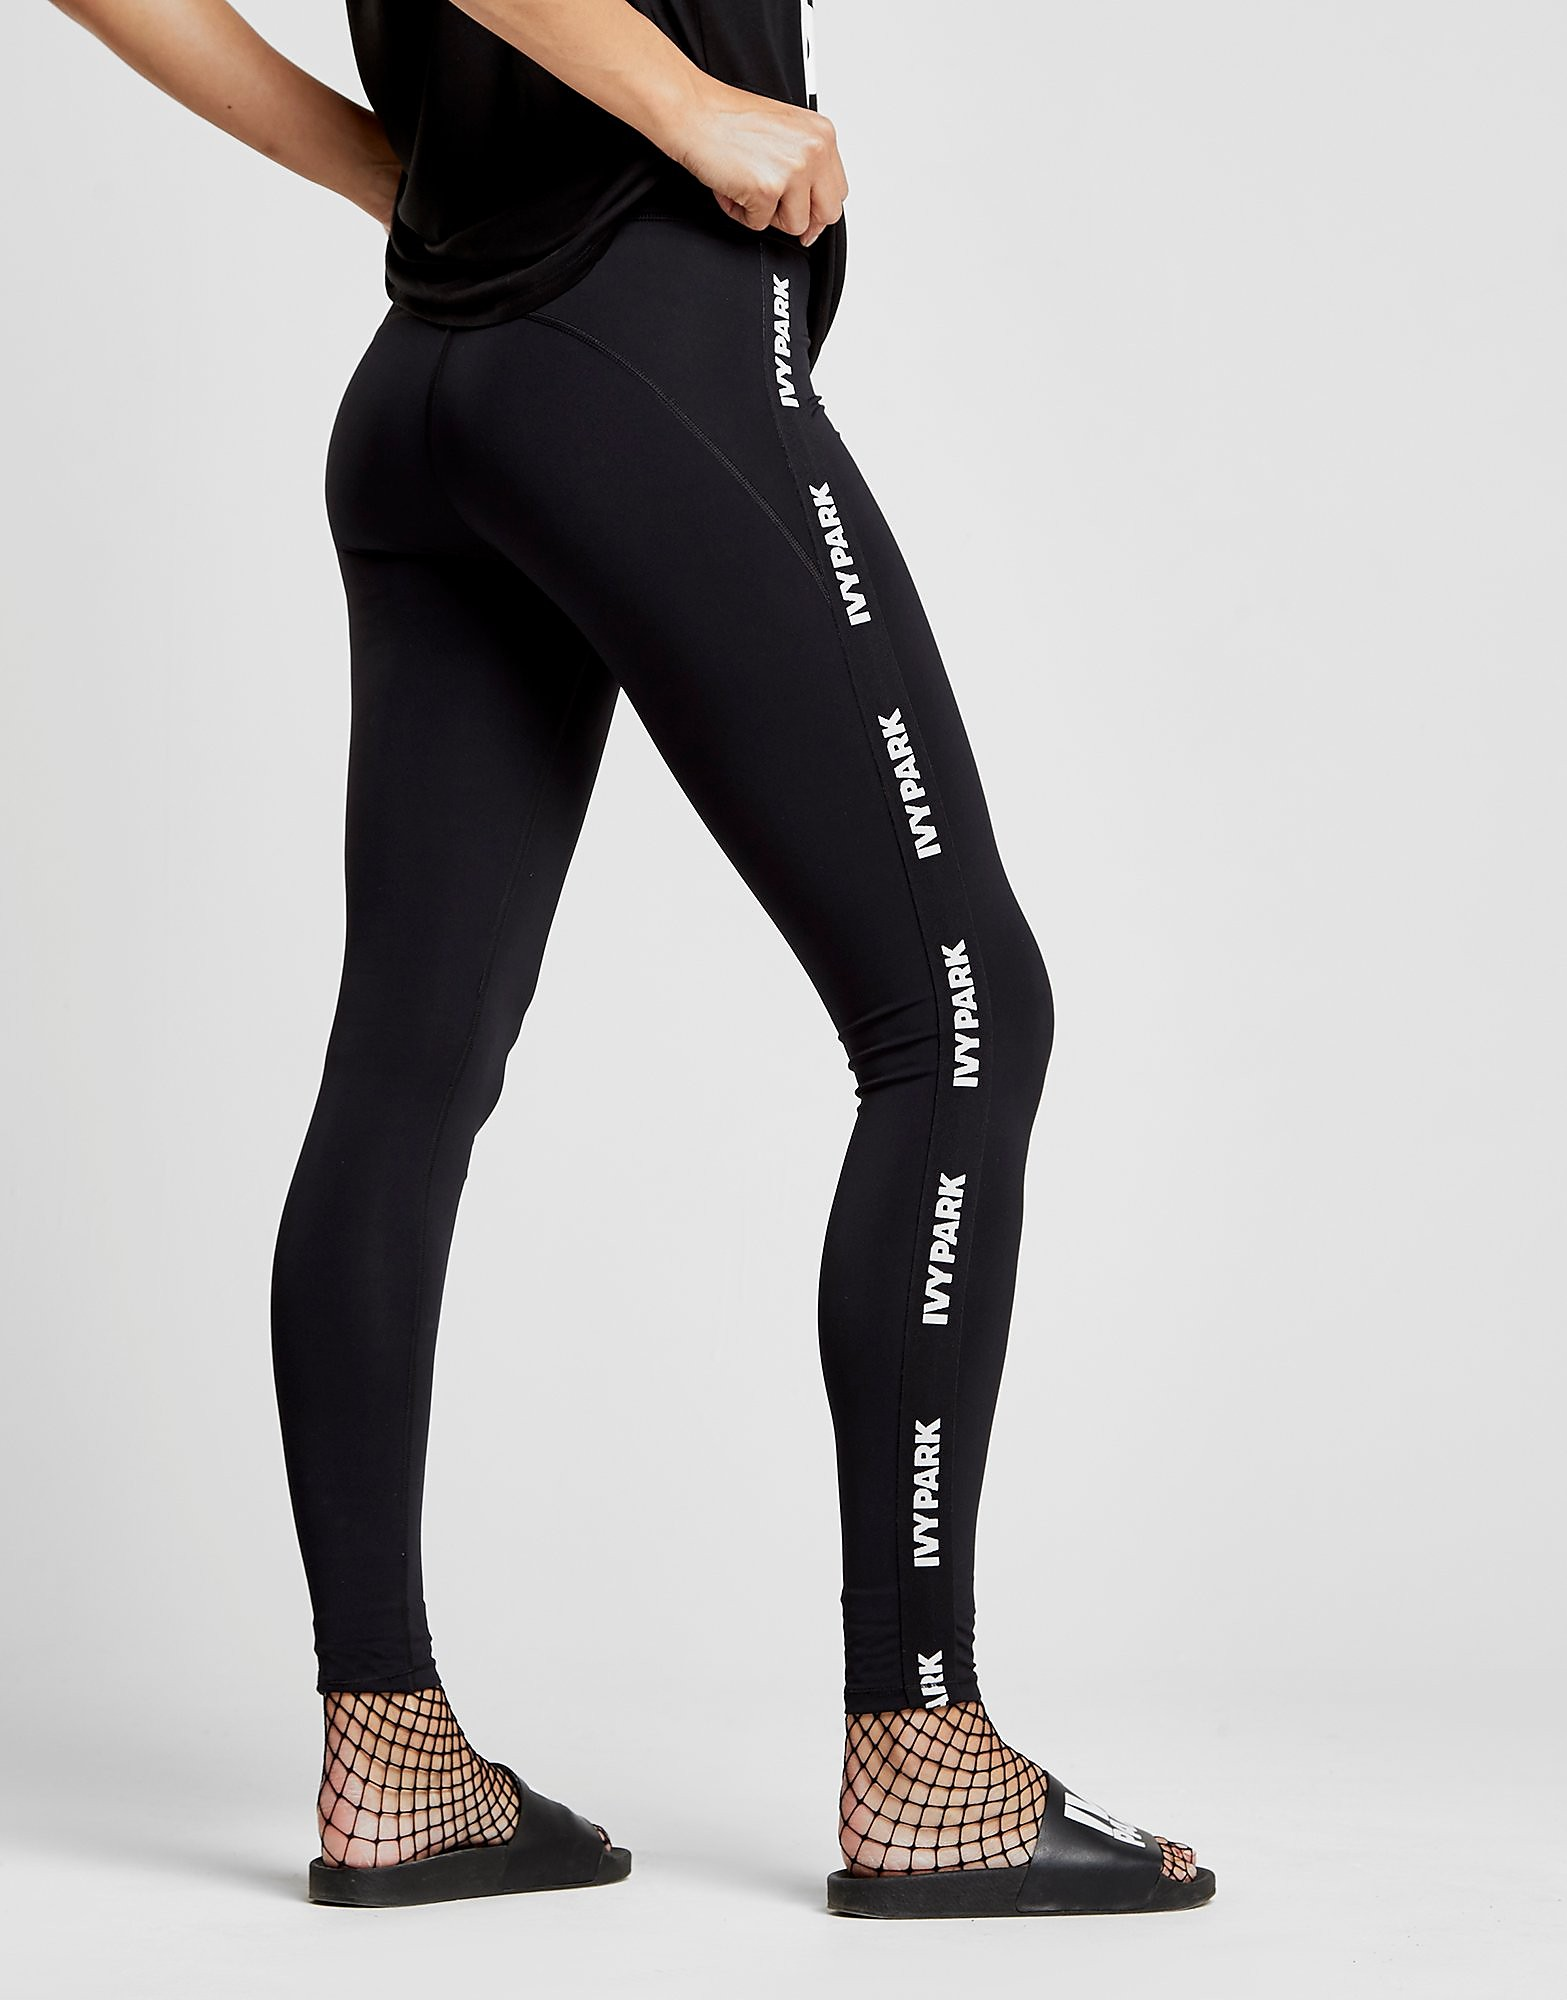 IVY PARK Logo Tape Tights